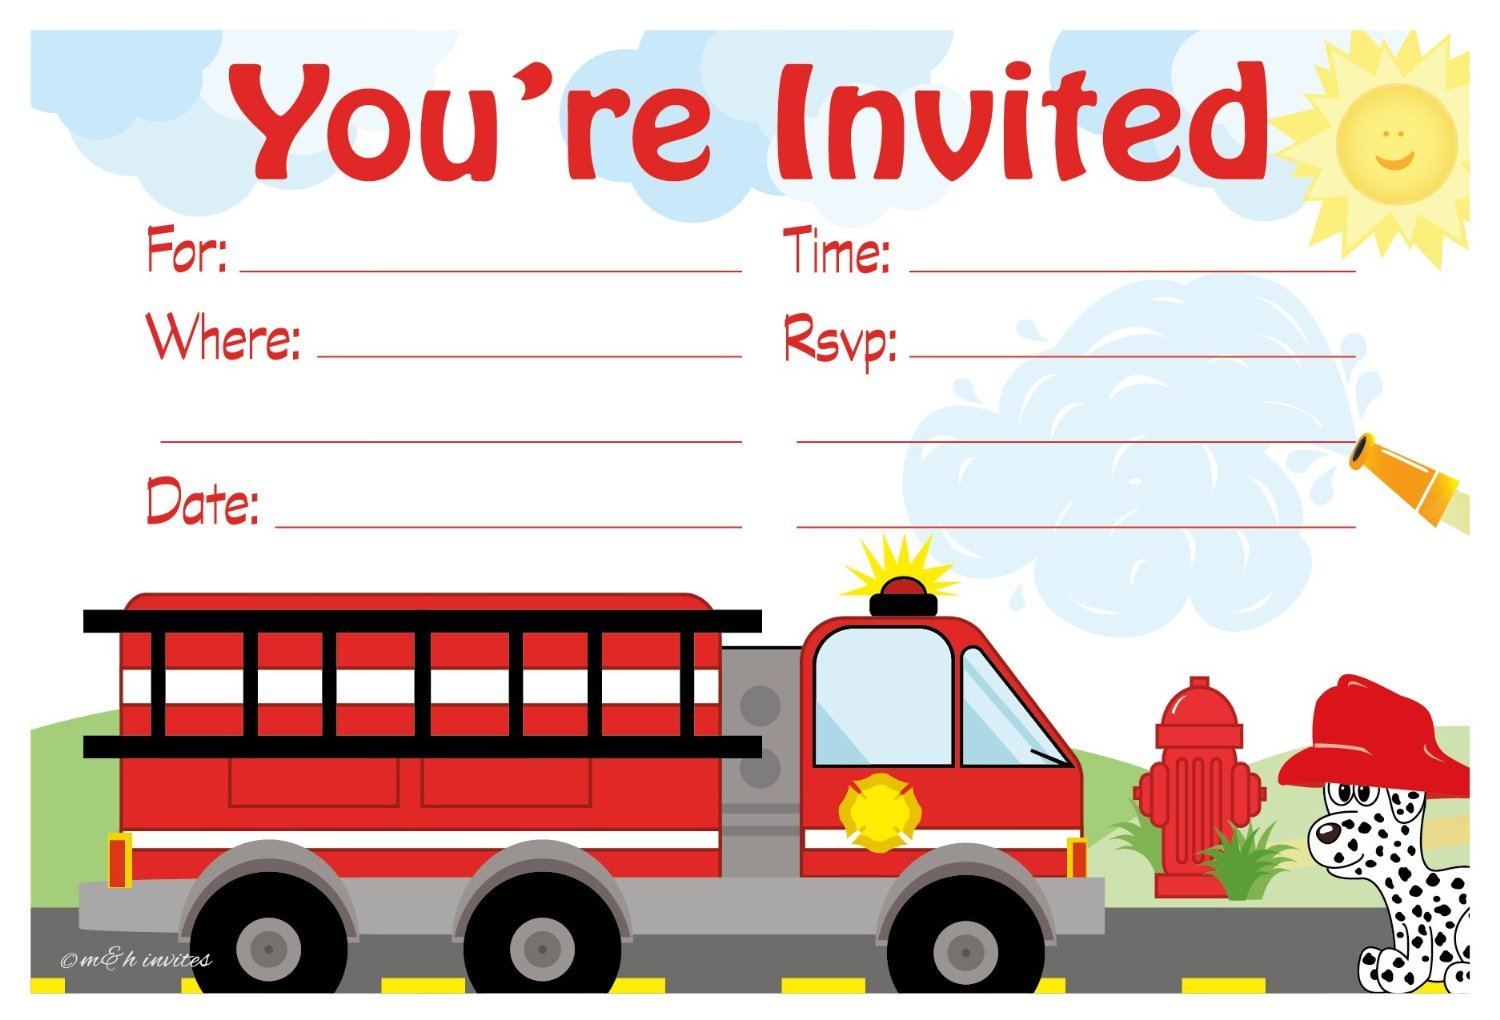 Firetruck Birthday Party Invitations - Fill In Style (20 Count) With Envelopes by m&h invites